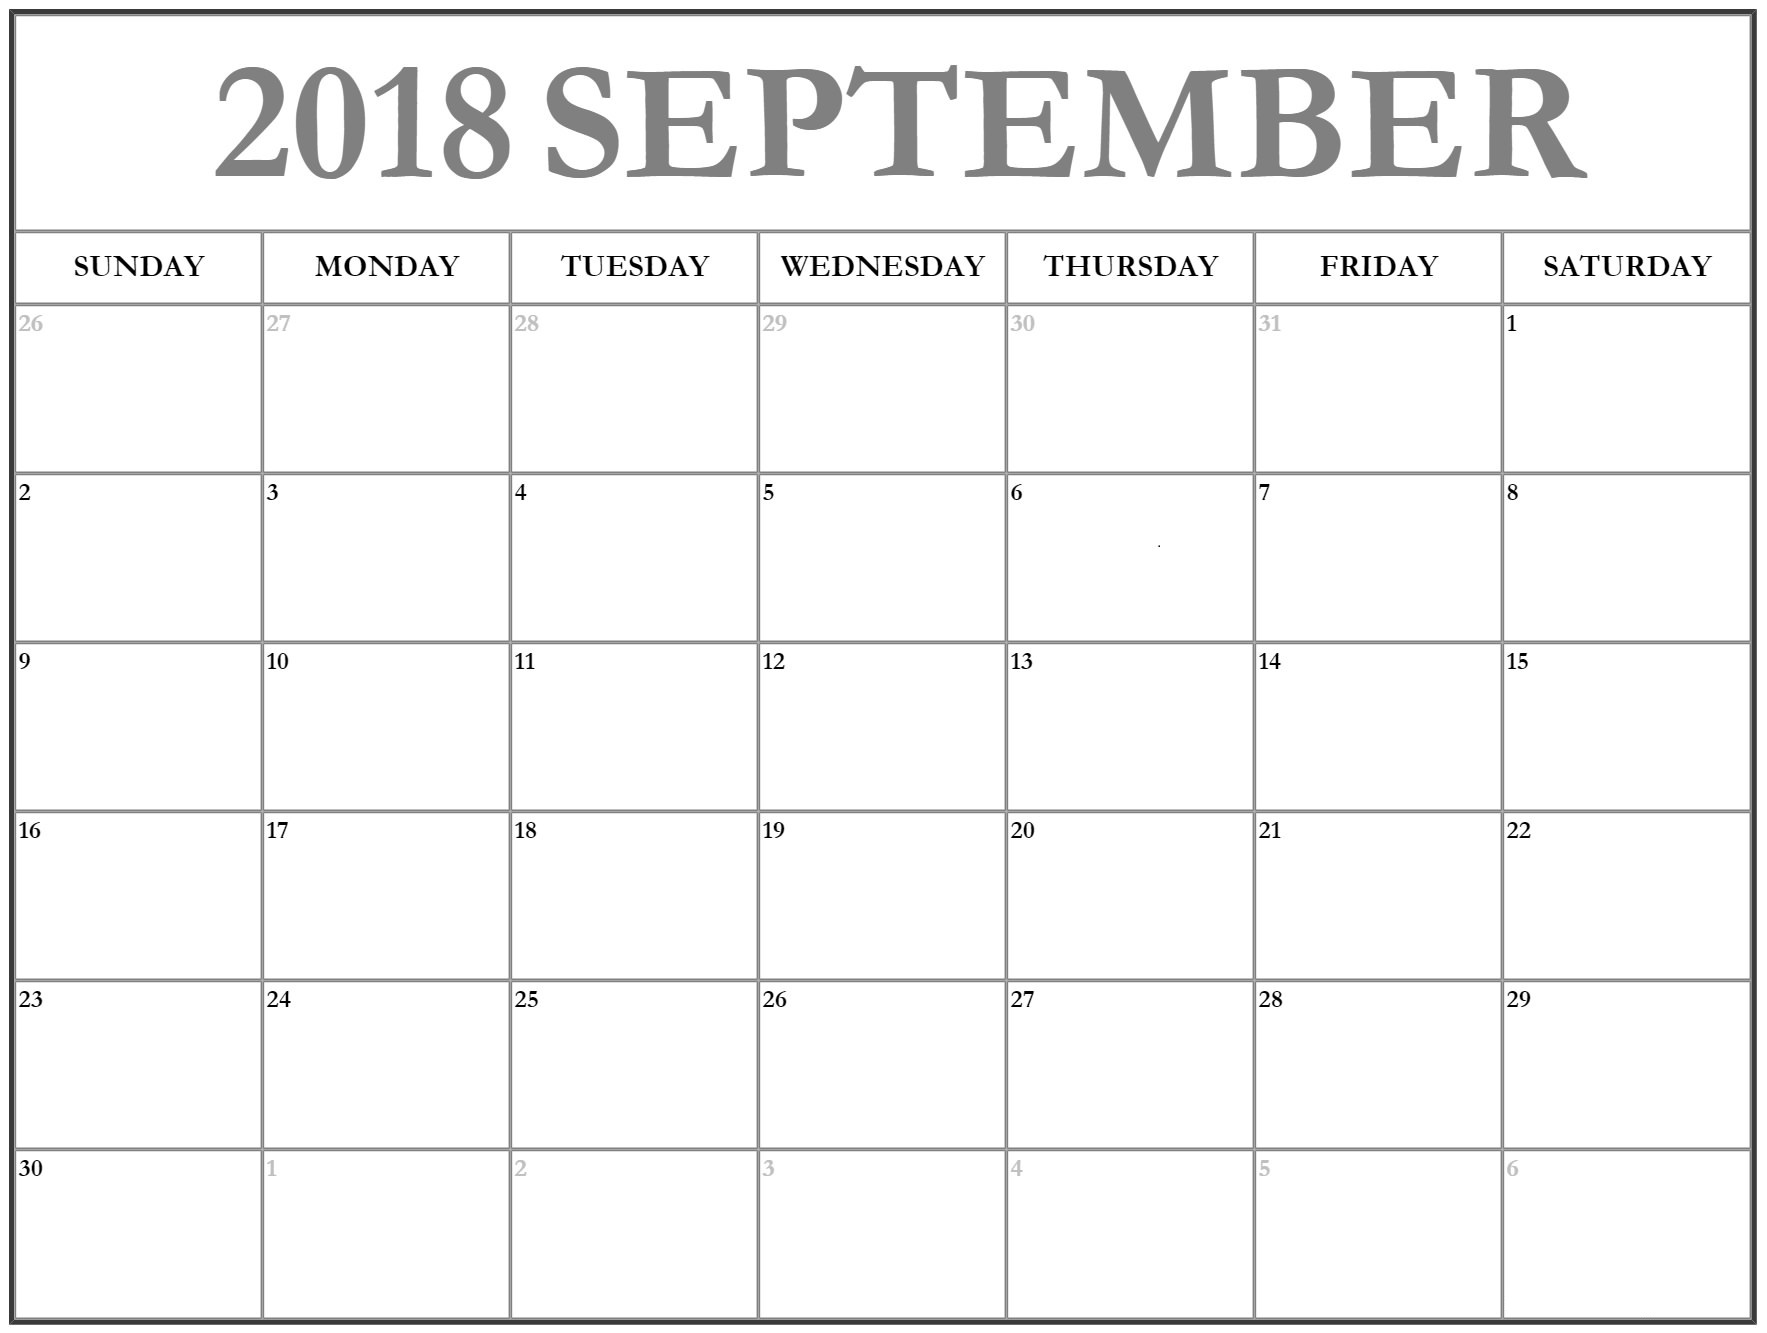 Download September 2018 Calendar Excel